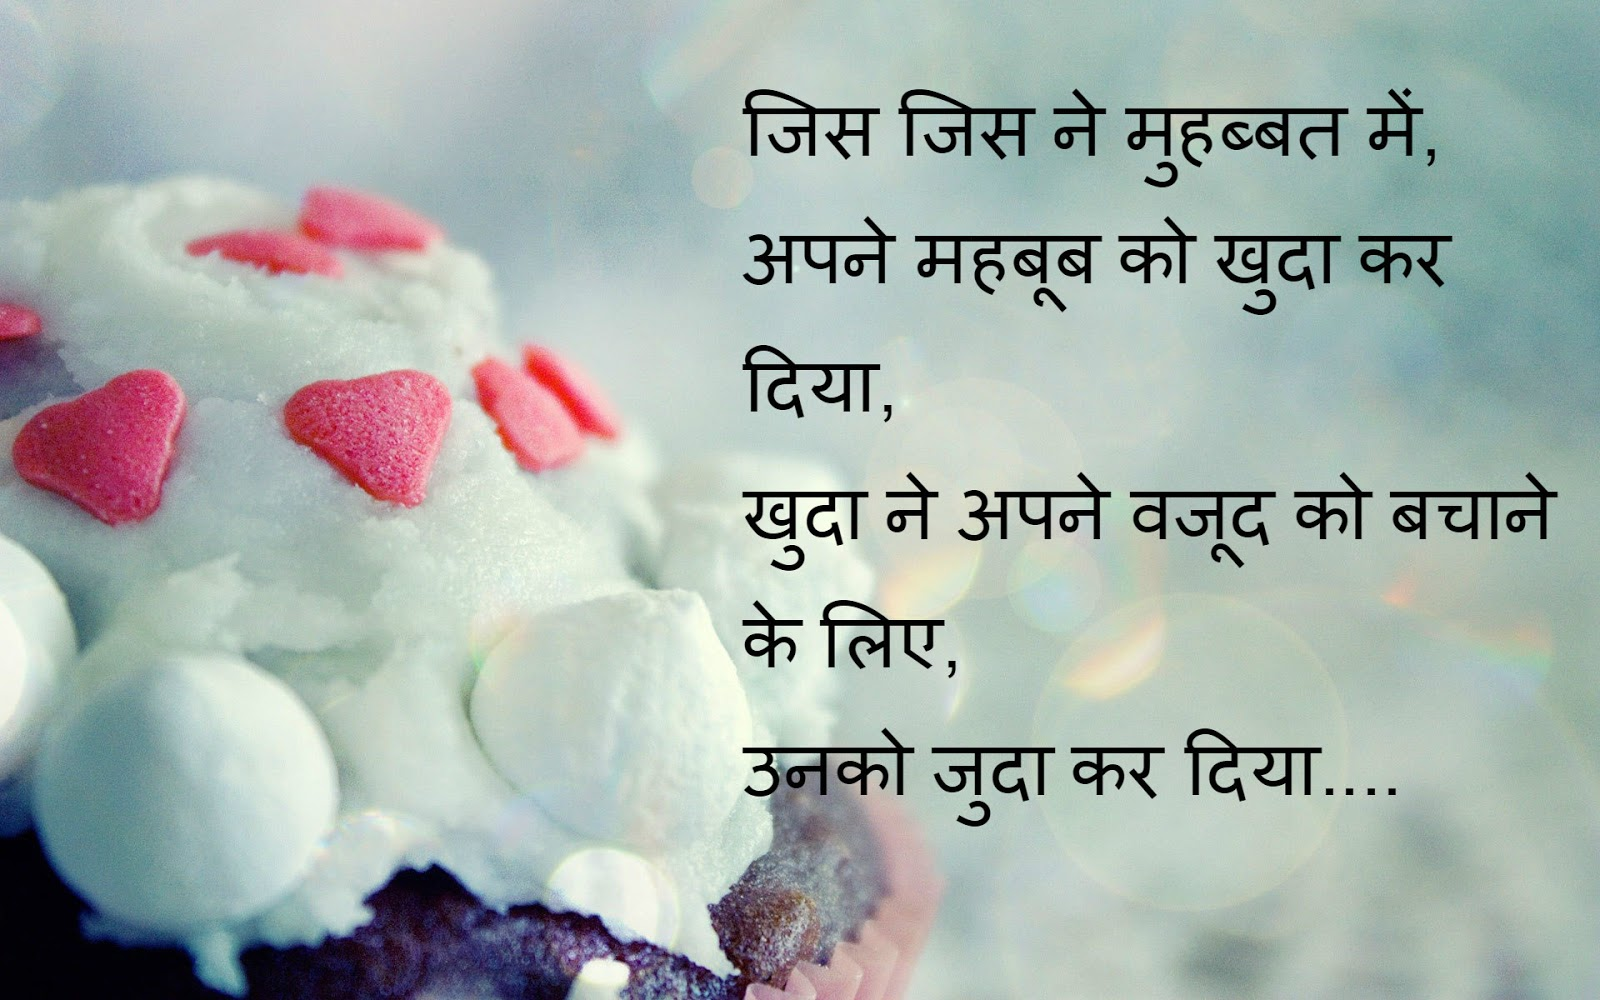 Hindi Shayari Pics Images Wallpaper For Facebook